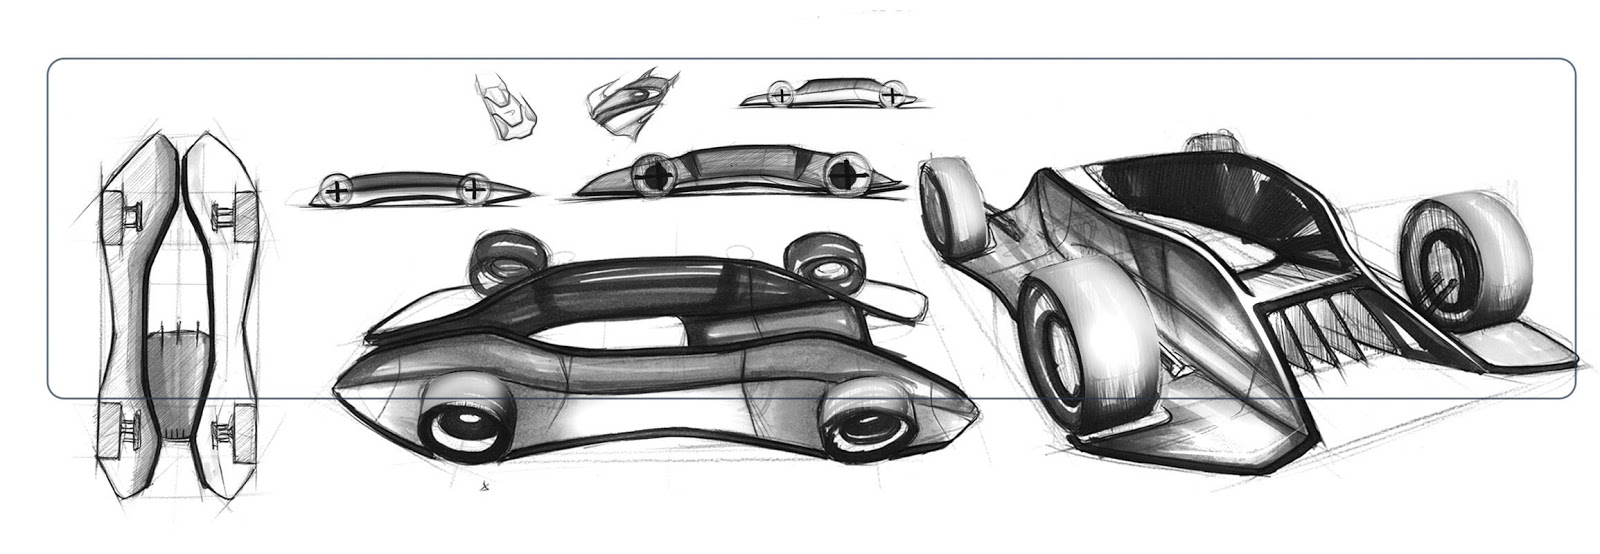 mclaren gt vision by rohan patel